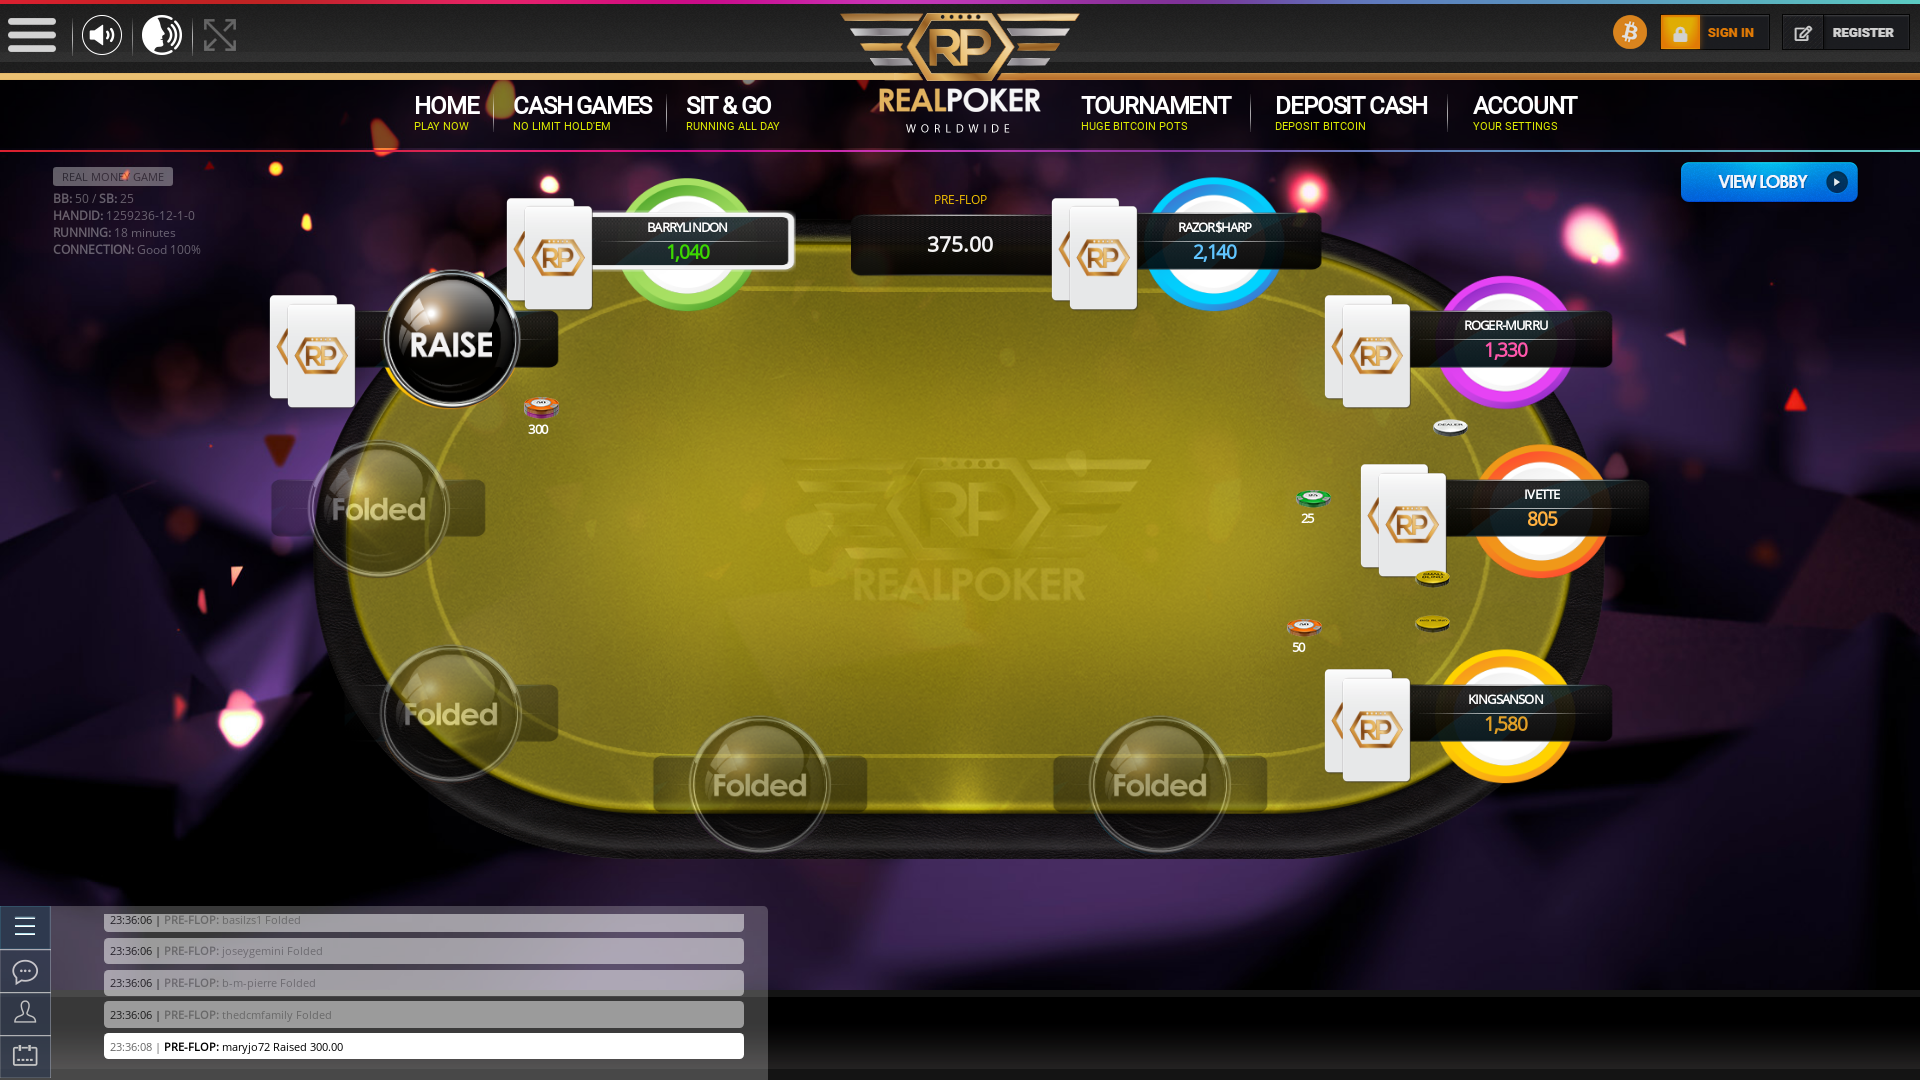 Online poker on a 10 player table in the 18th minute match up